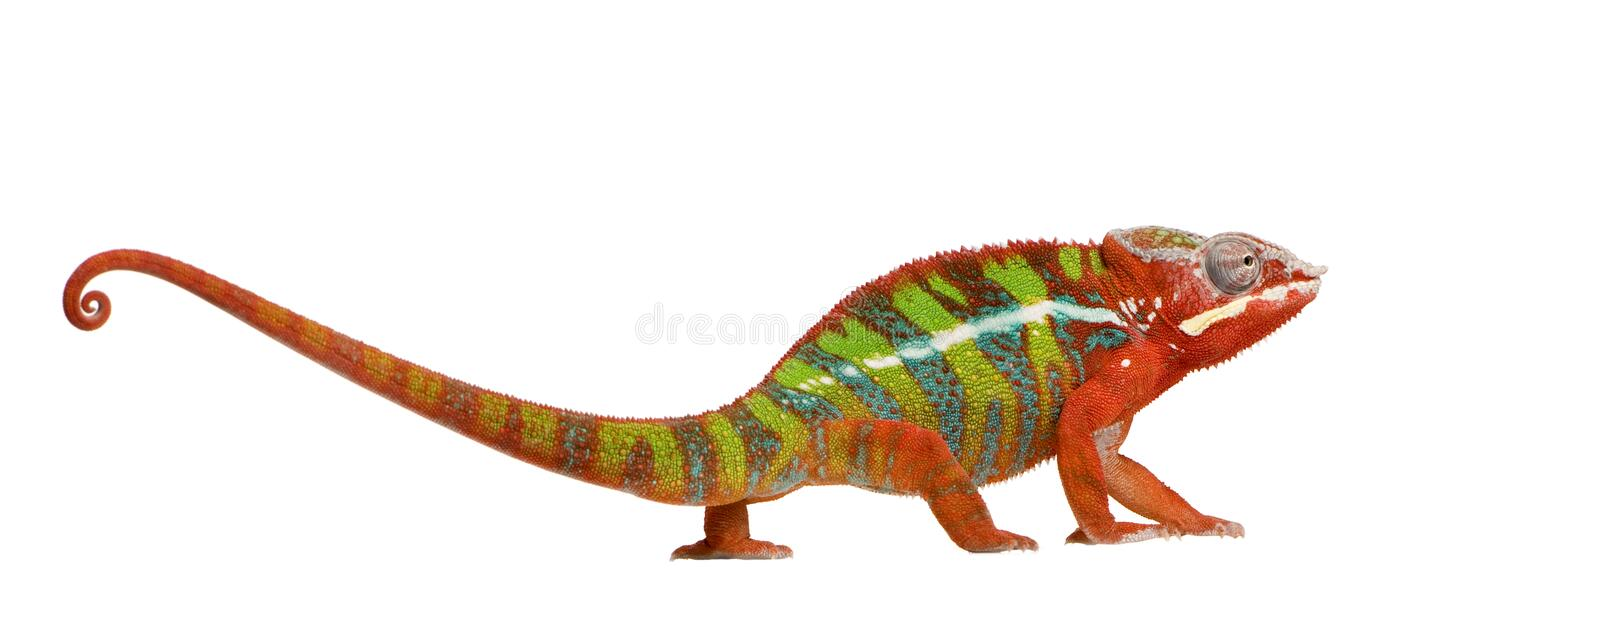 Chameleon Furcifer Pardalis - Ambilobe (18 months). In front of a white background royalty free stock images